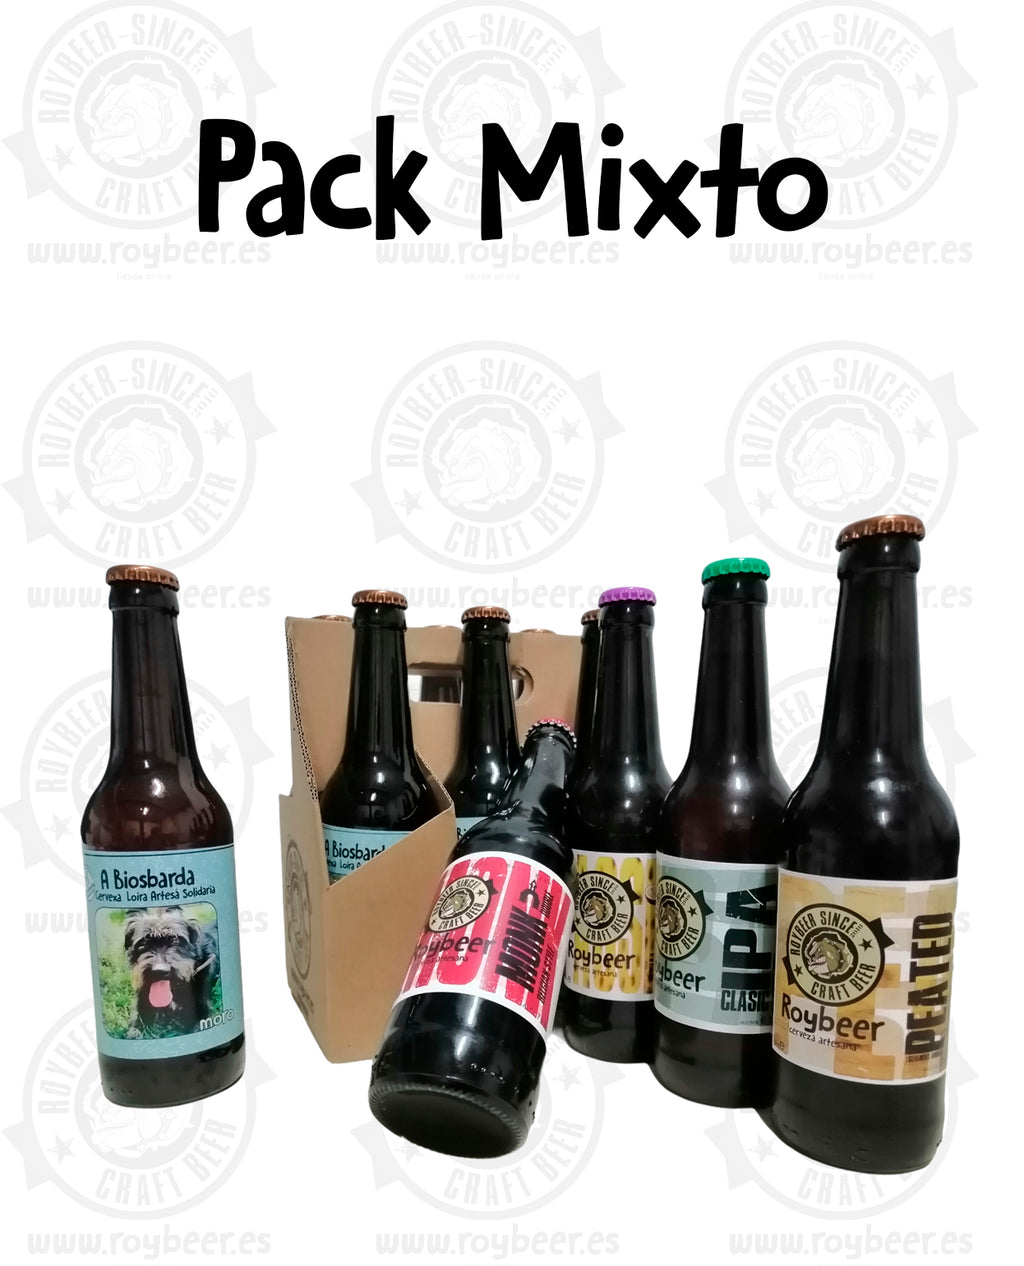 Pack Mixto